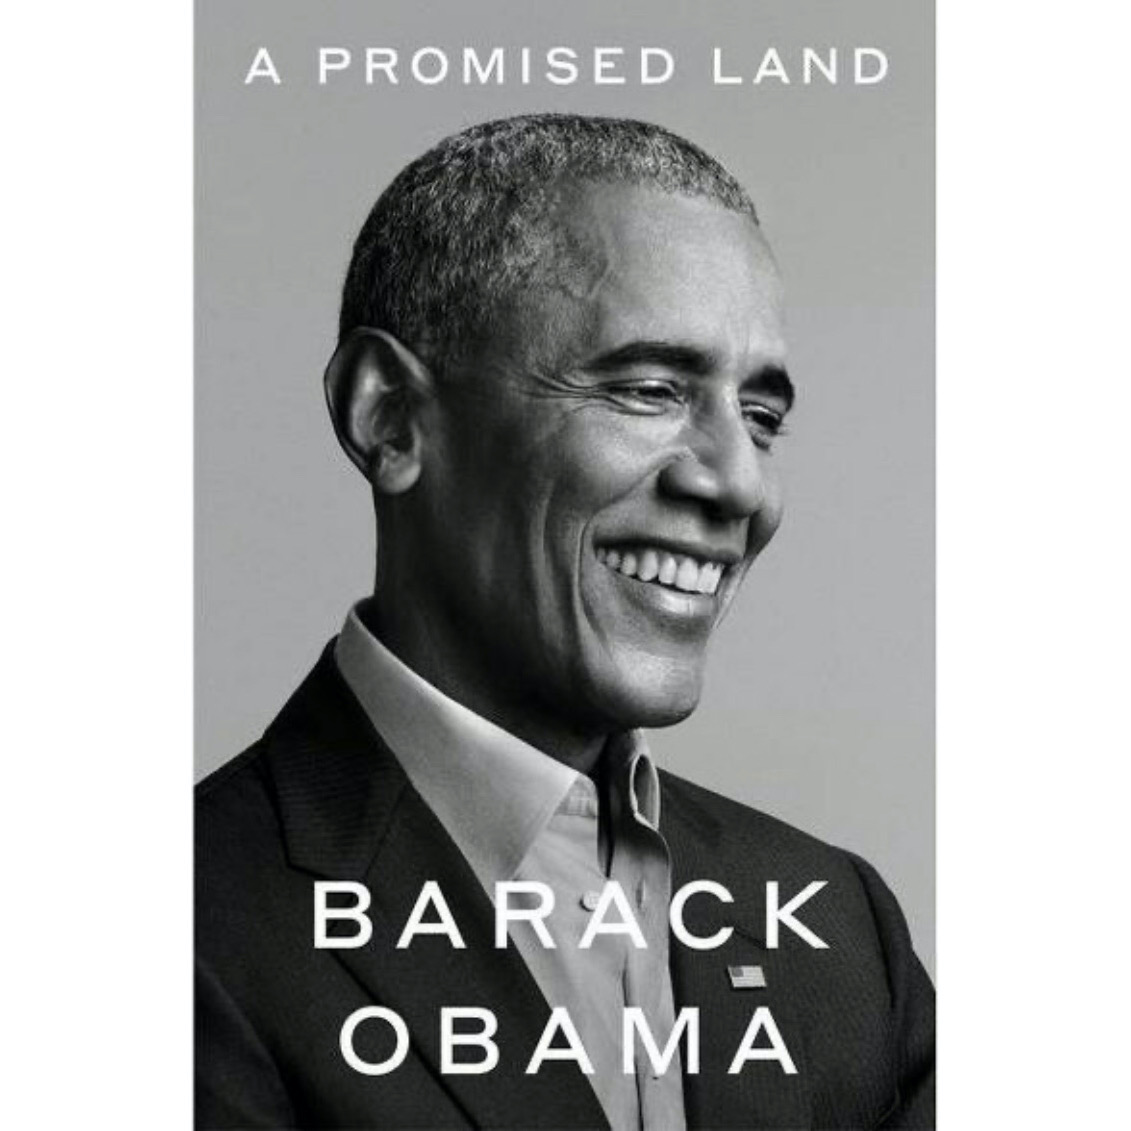 A promised land- Book Review